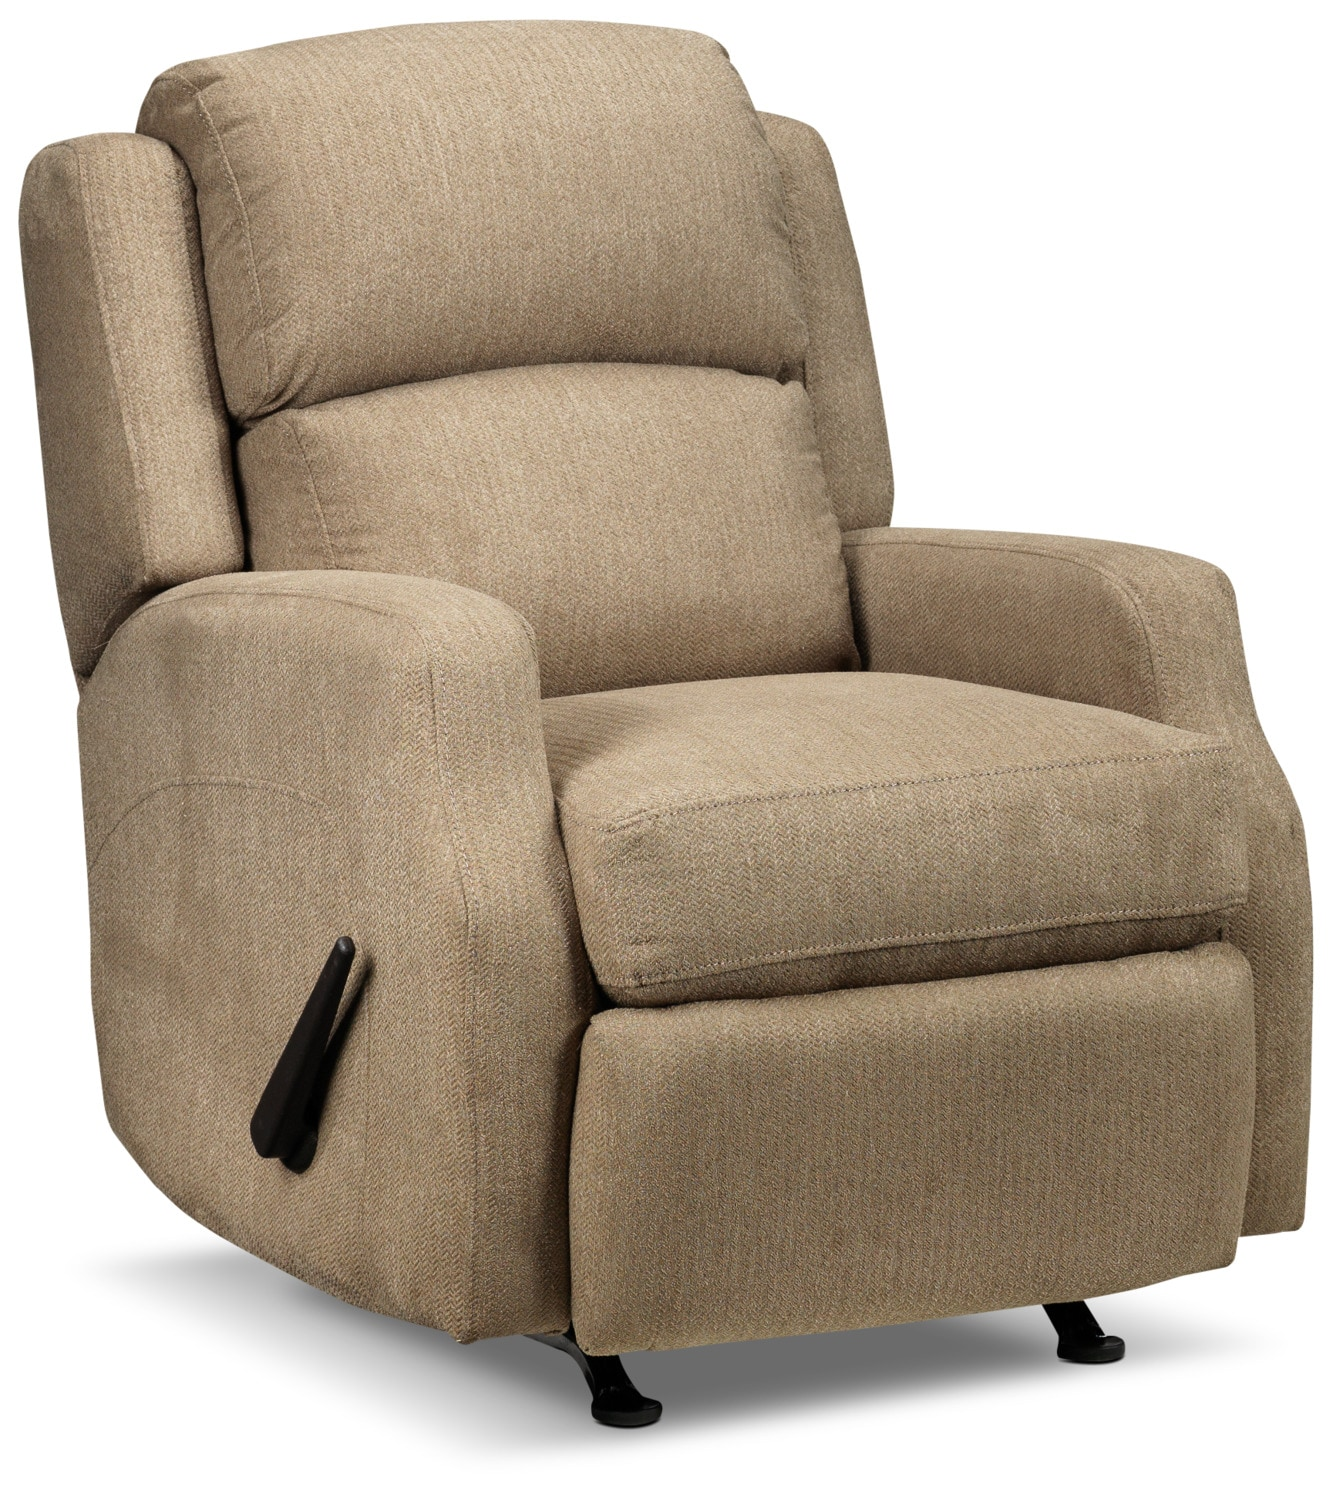 Woodsmoke Rocker Recliner - Tan